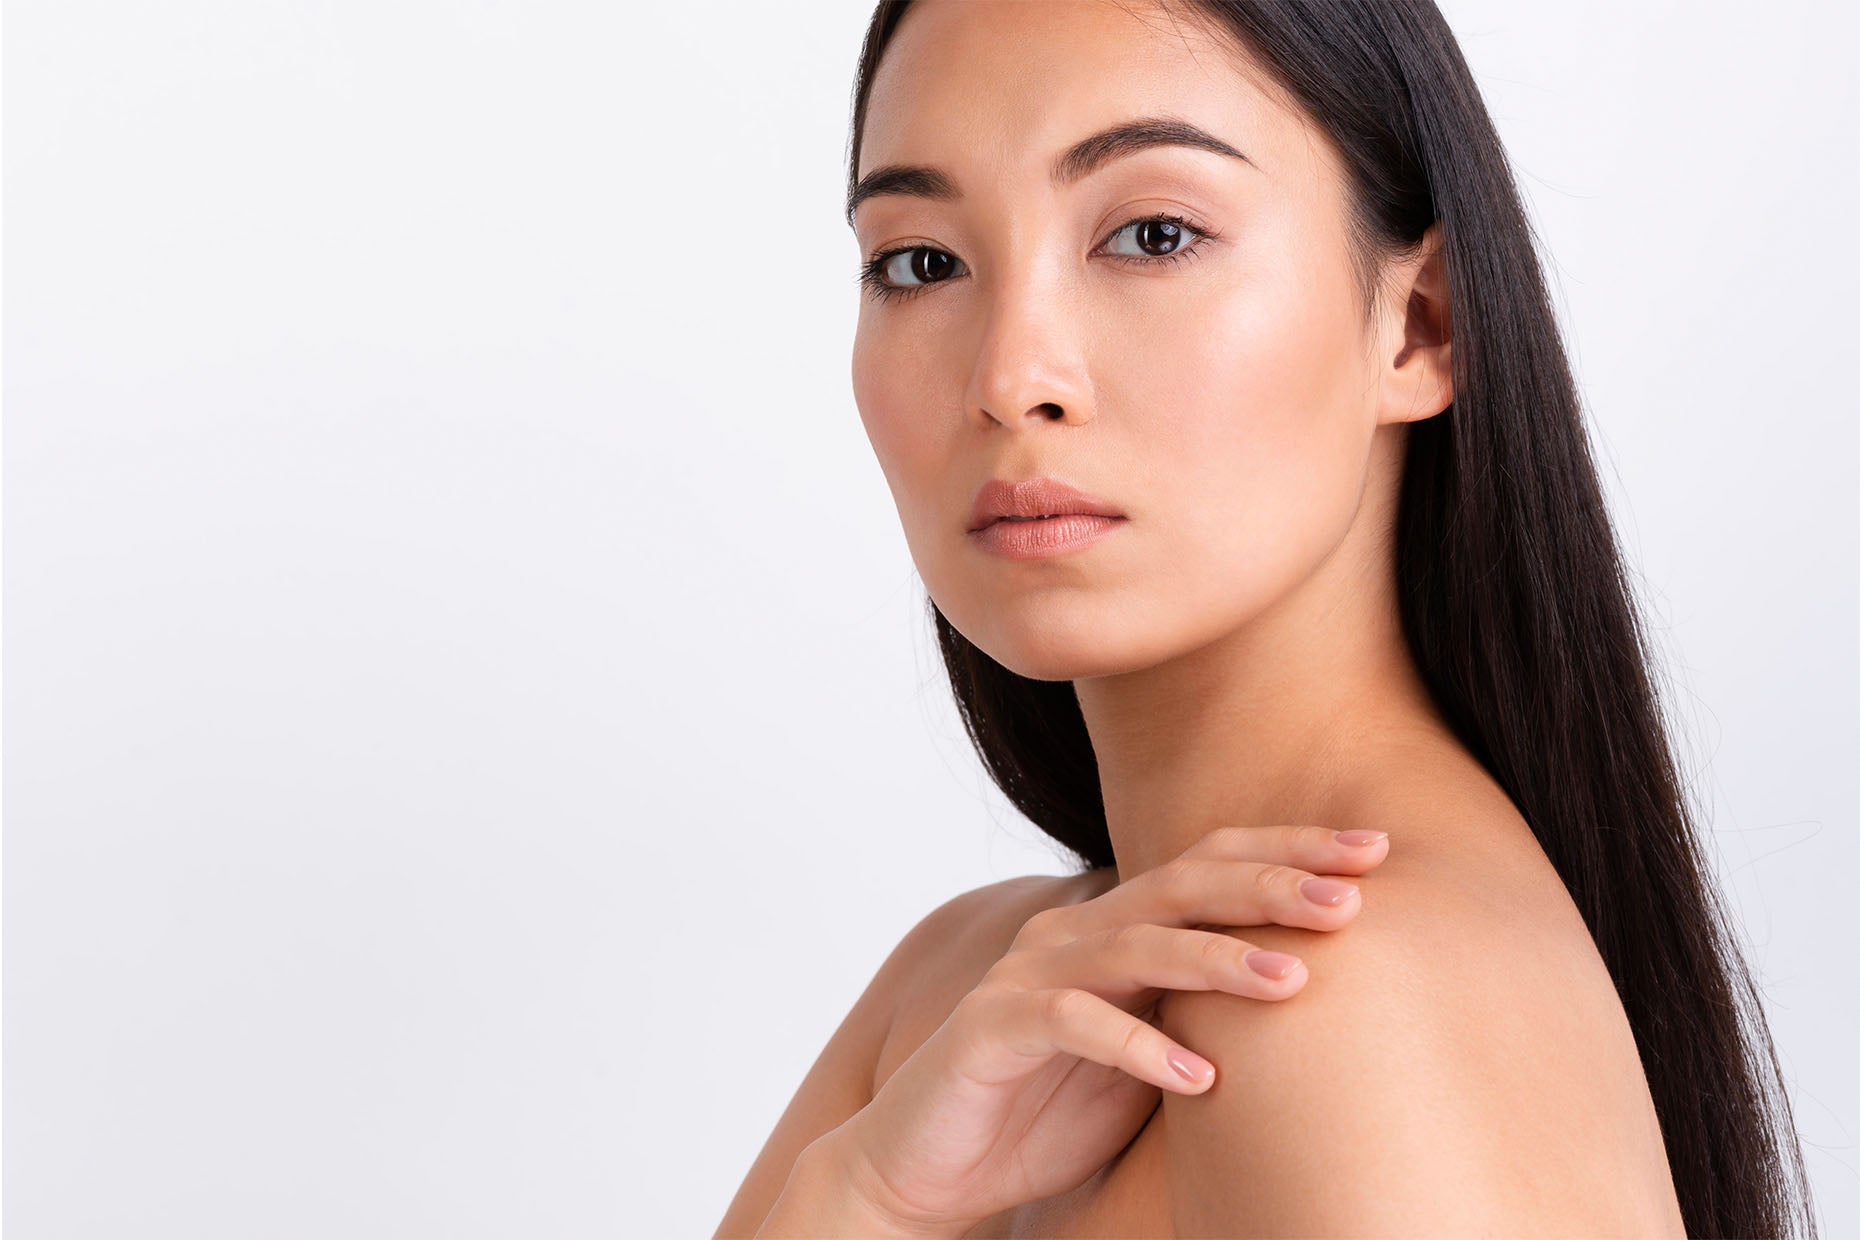 6 Glowing Skin Secrets To Make Your Skin Perfect